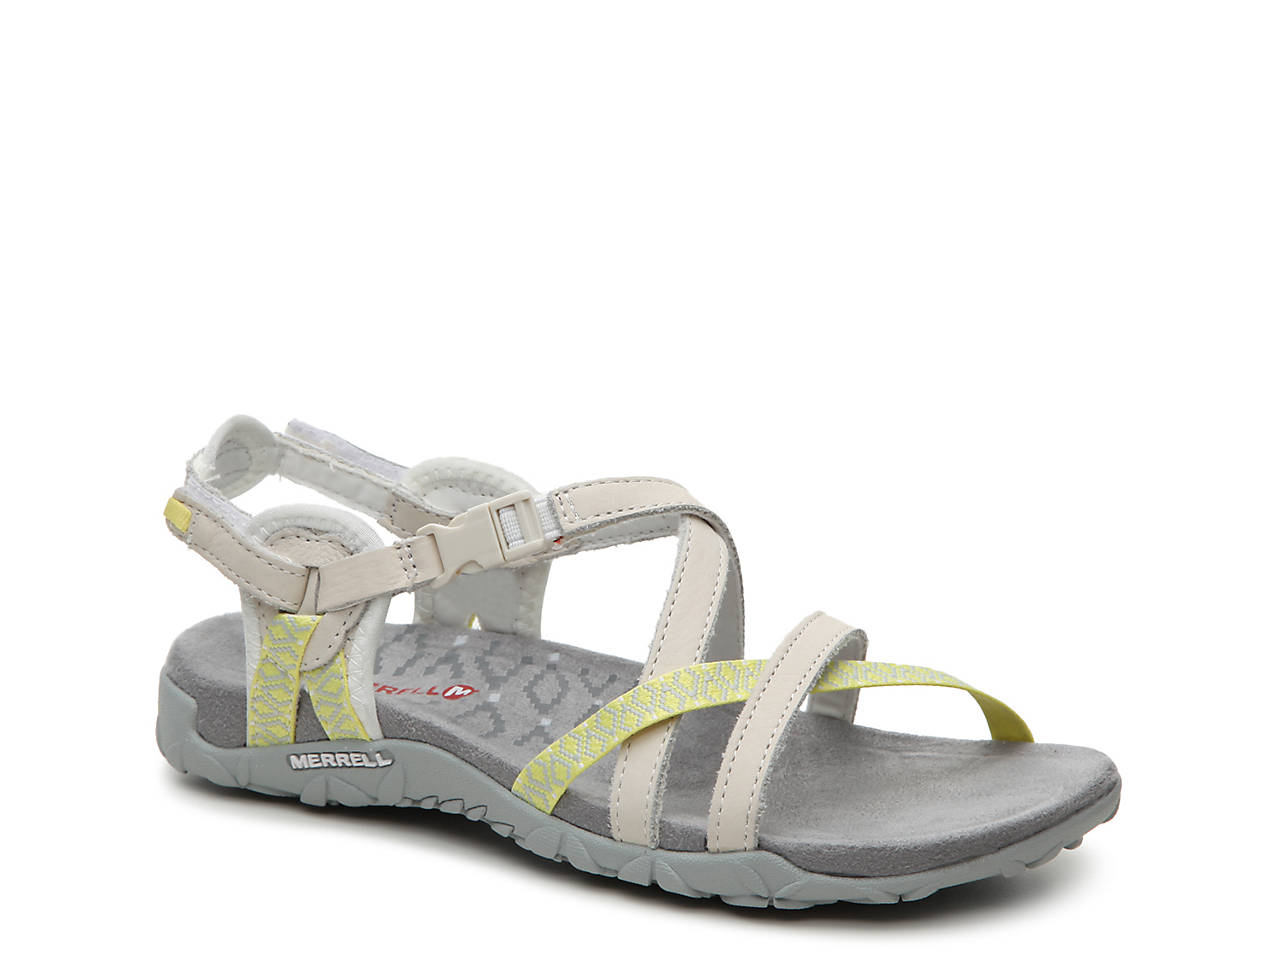 908ef2c5539c Merrell Terran Lattice II Sport Sandal Women s Shoes